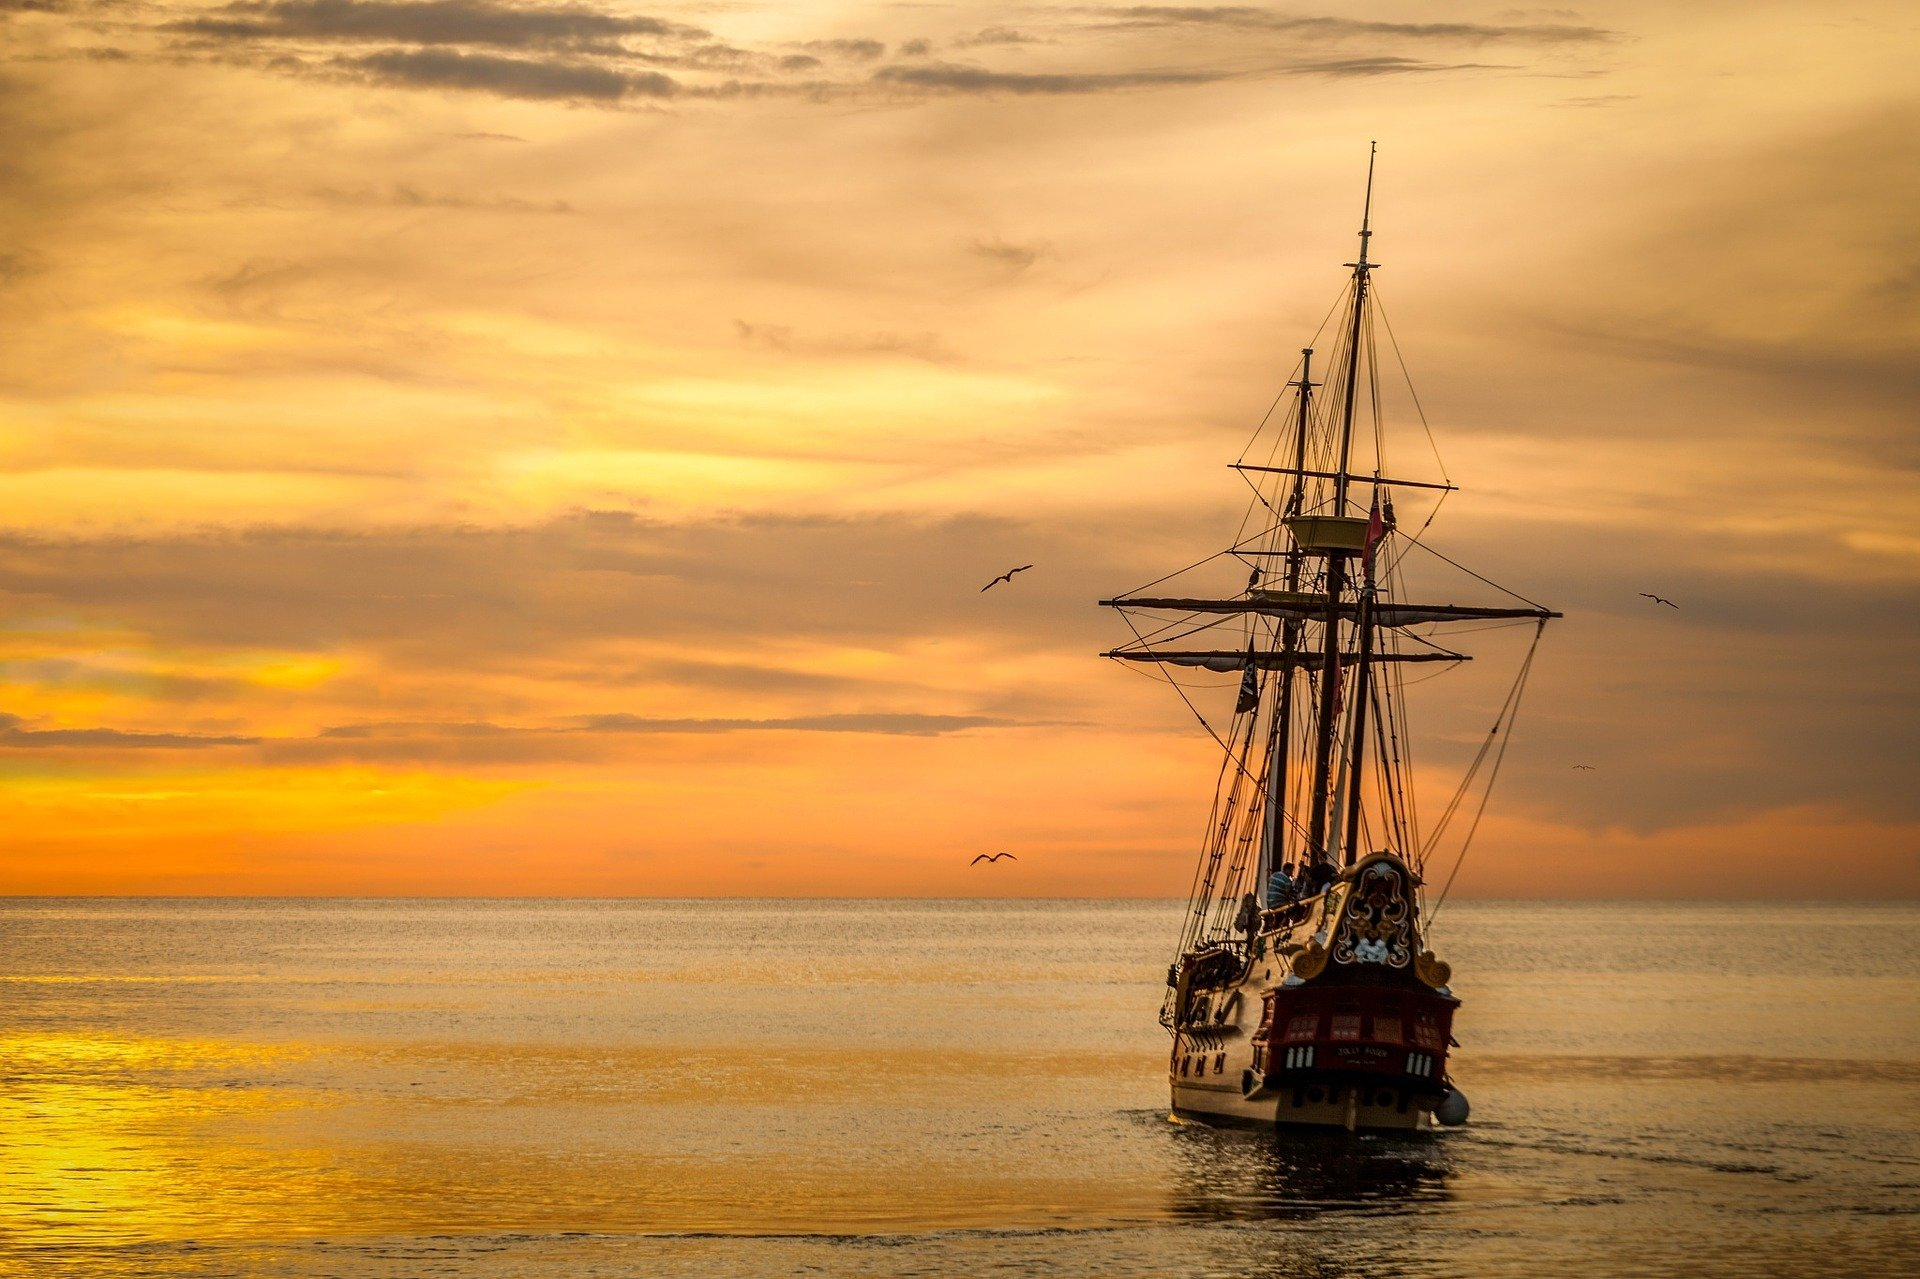 Old ship sailing into the sunset